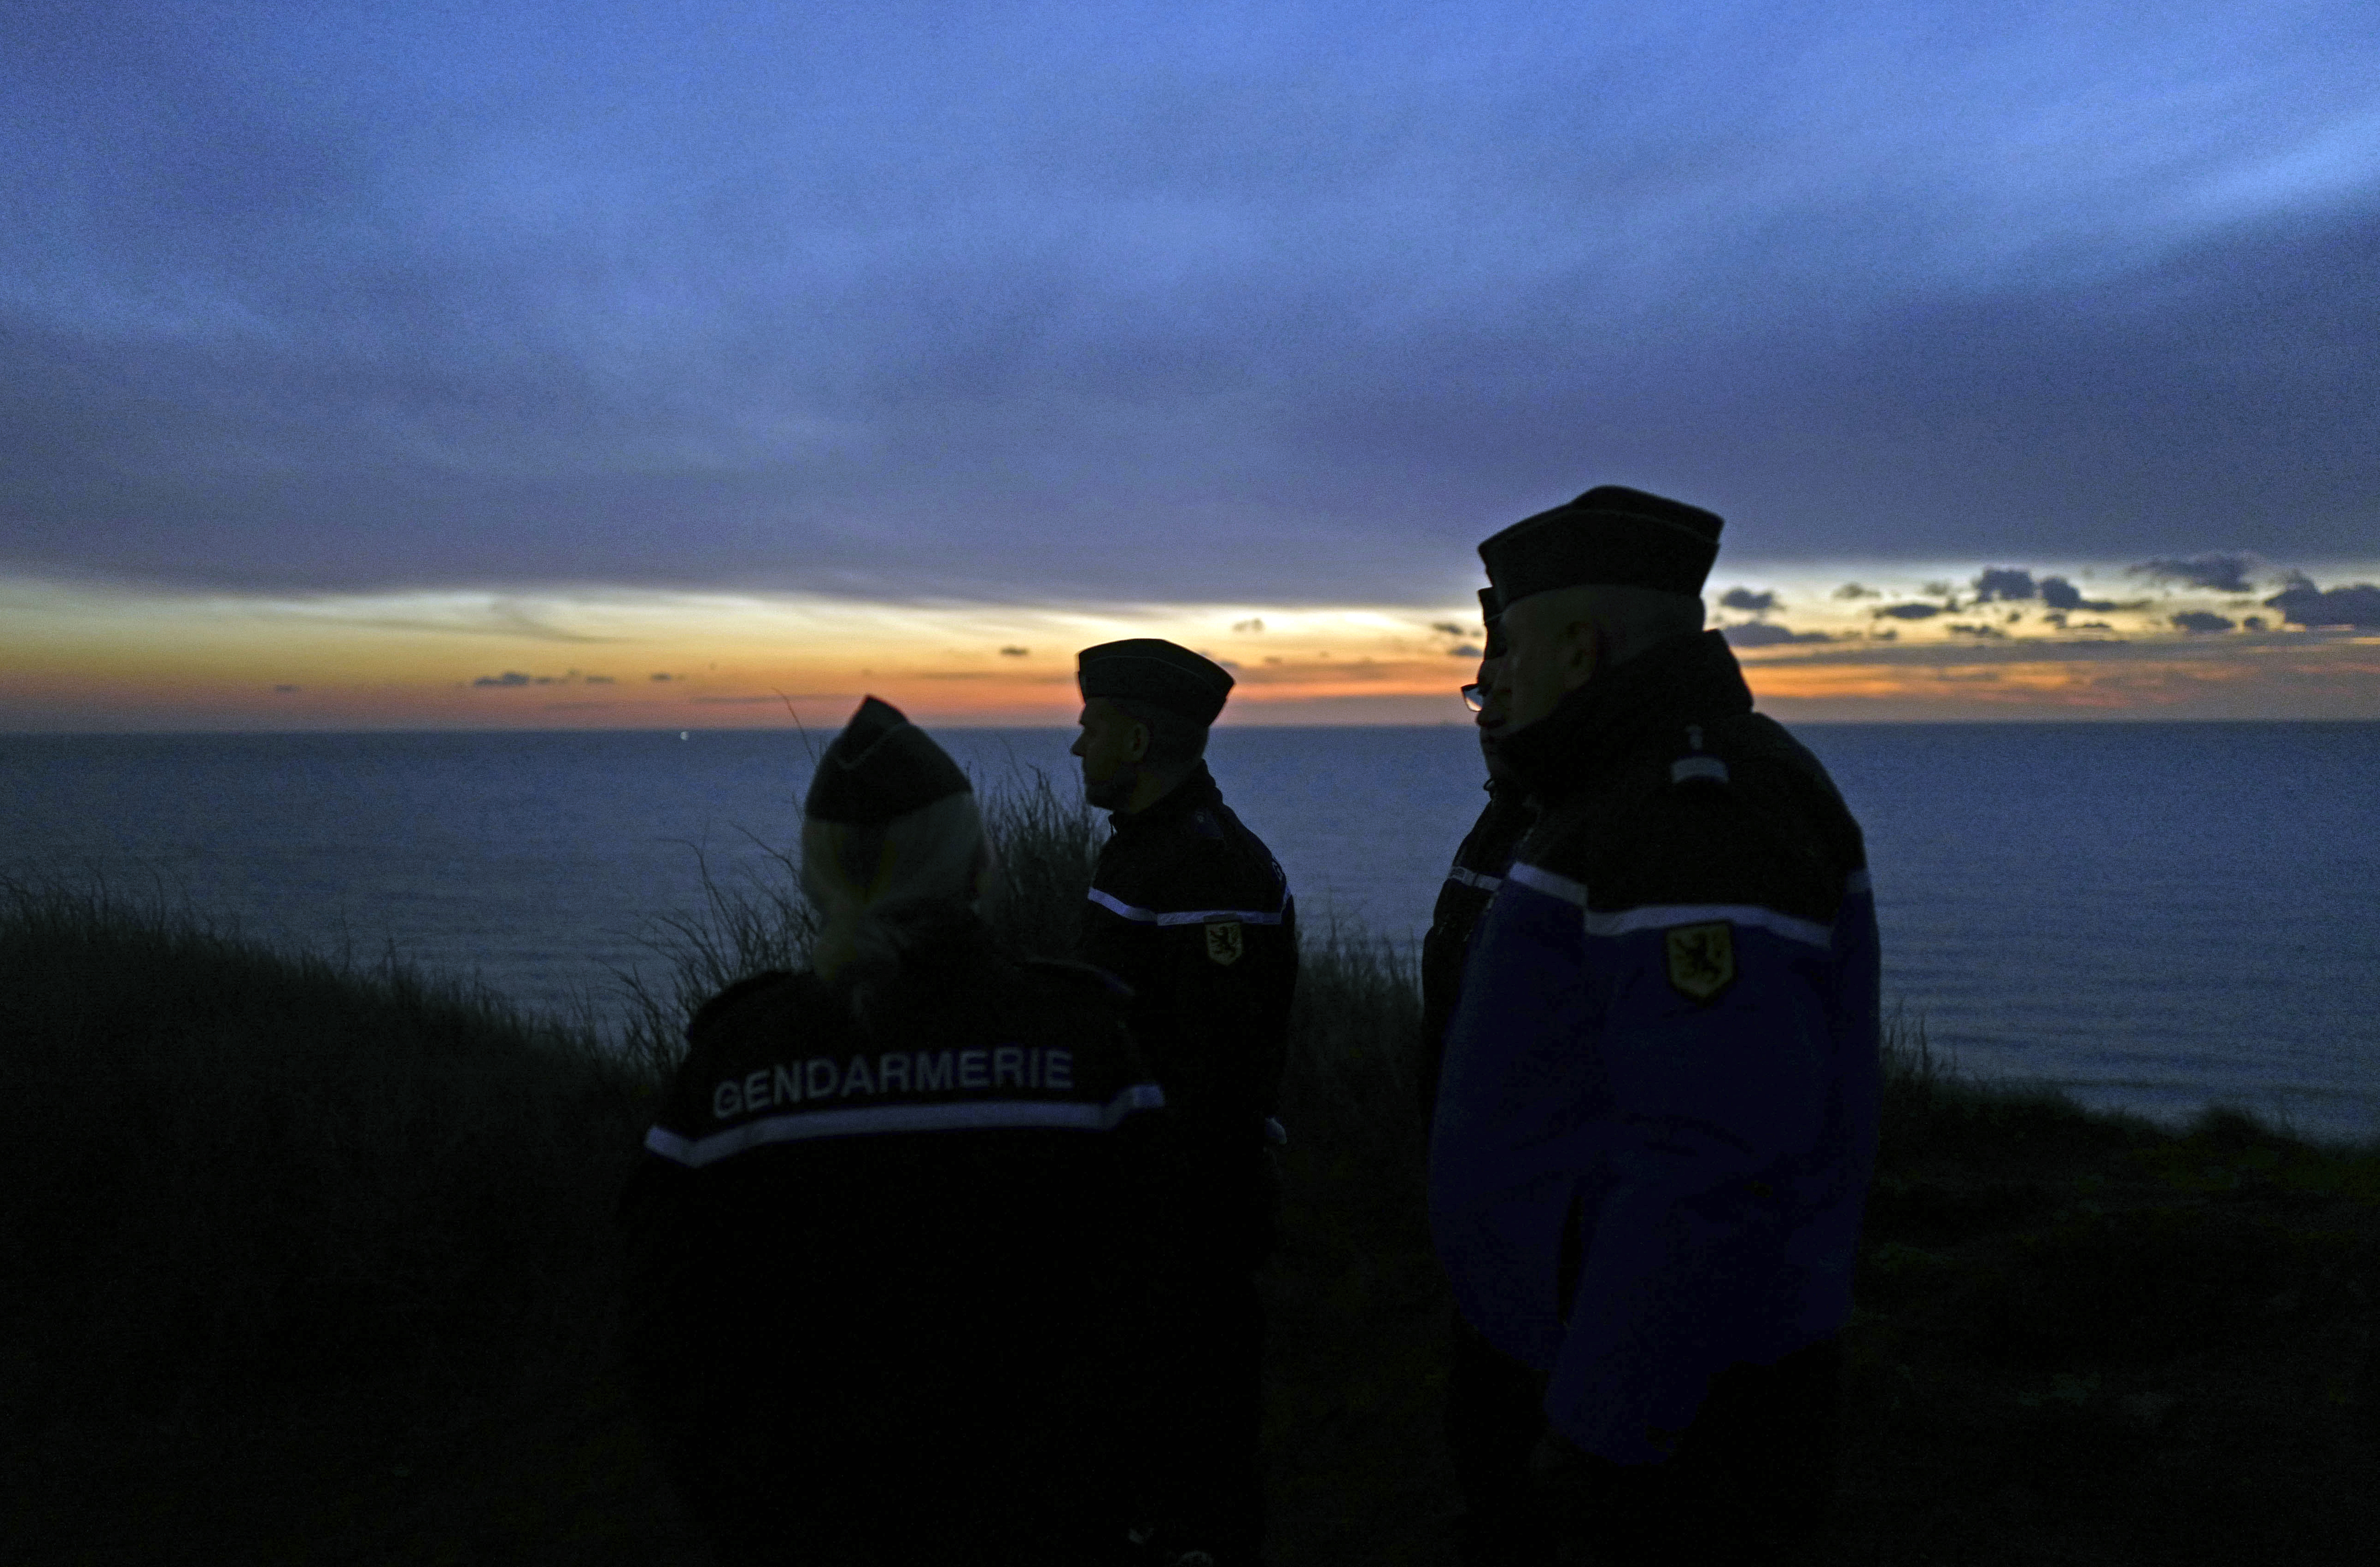 Migrant boats intercepted in English Channel